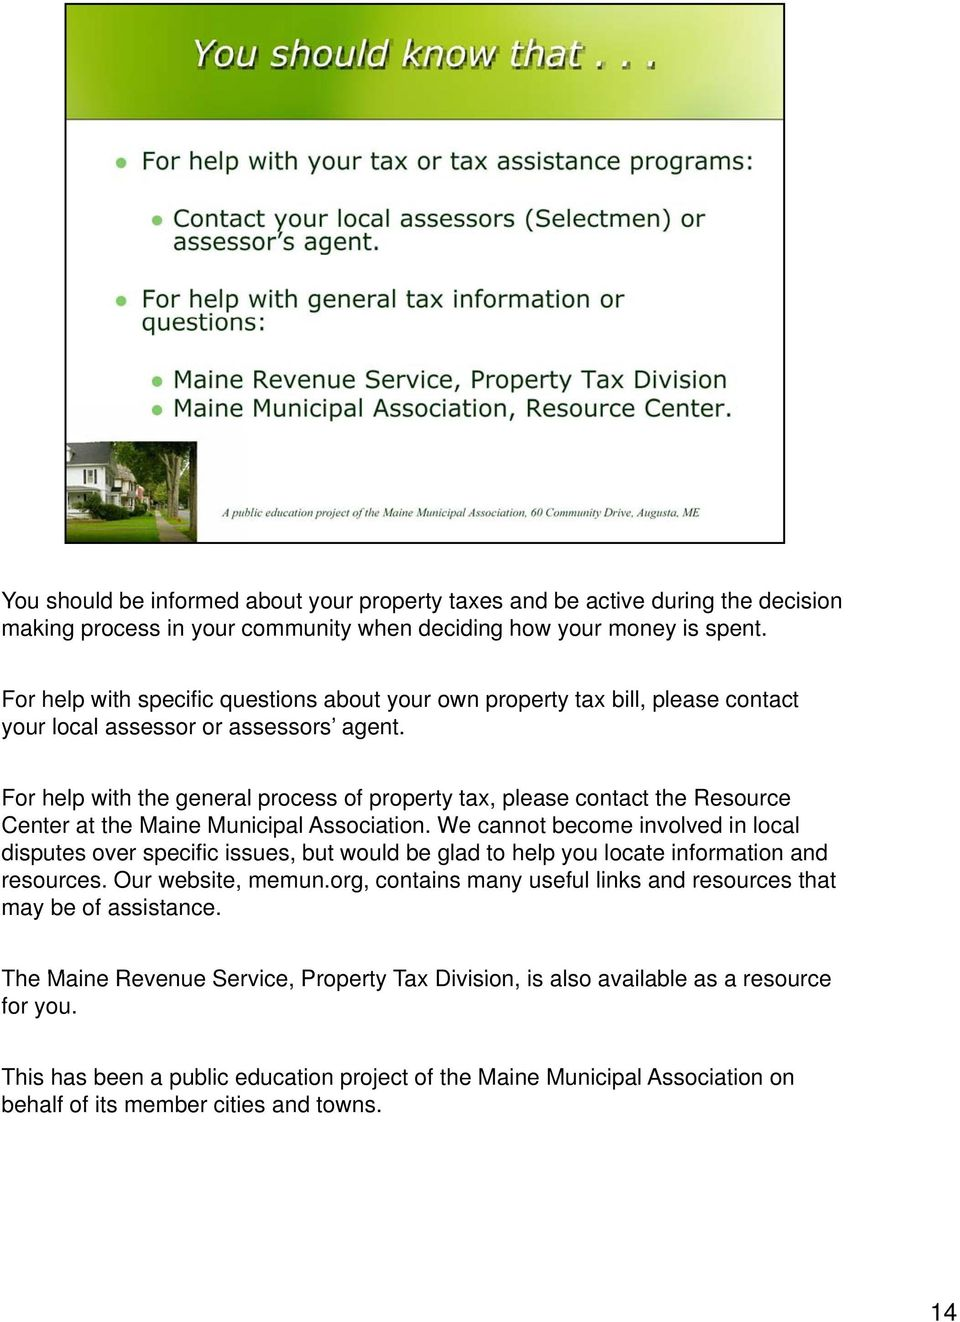 For help with the general process of property tax, please contact the Resource Center at the Maine Municipal Association.